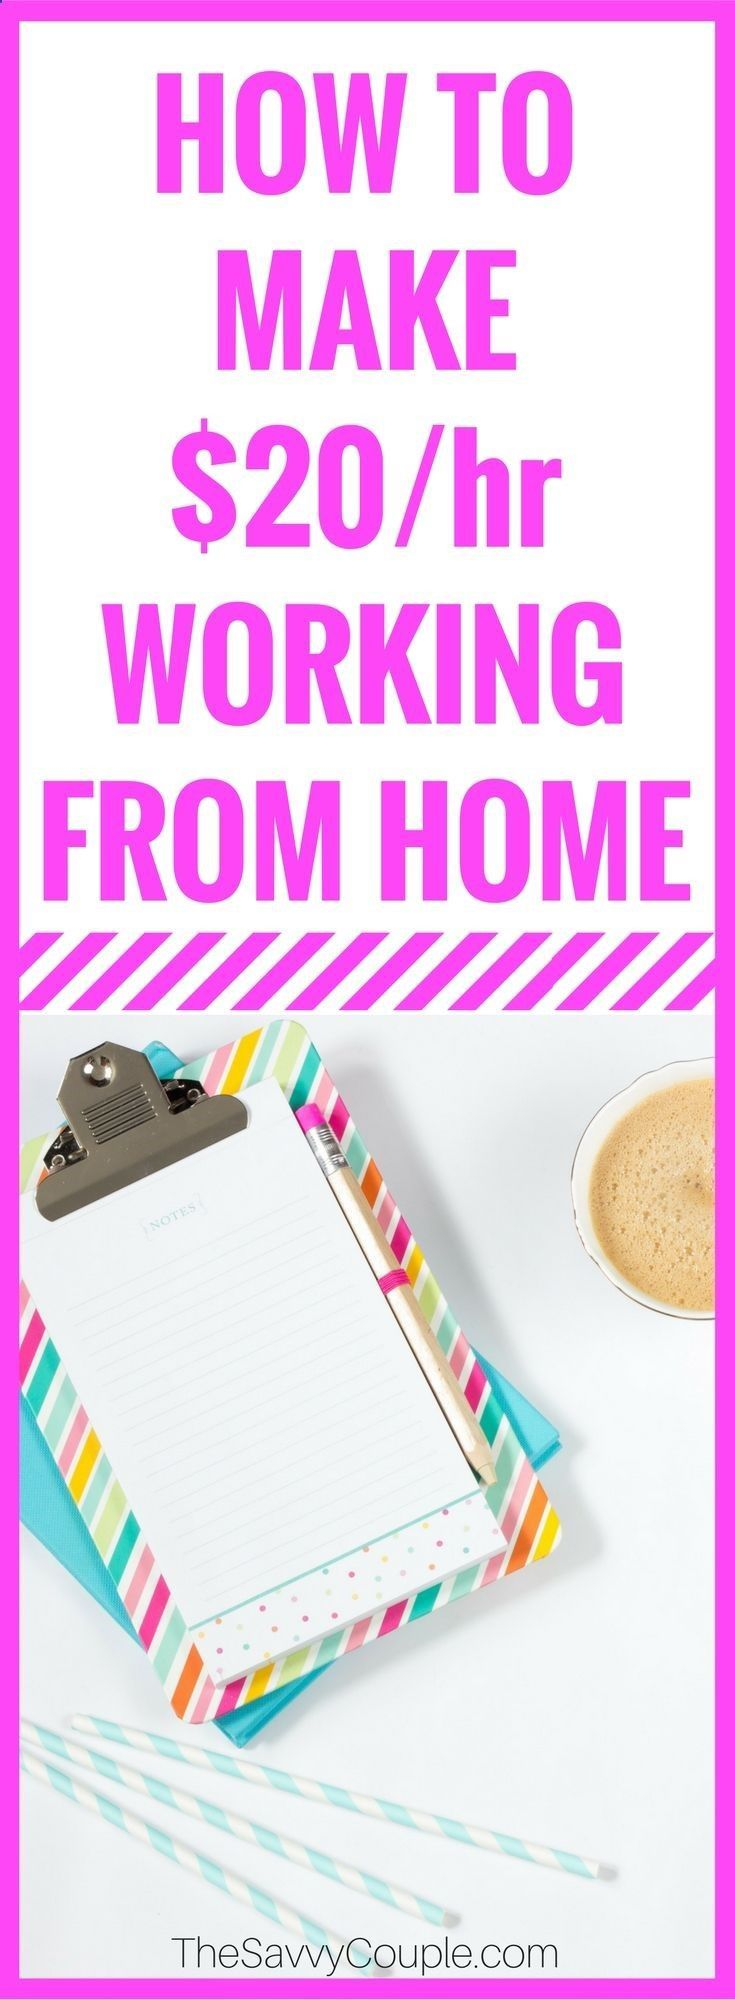 We have finally found the ultimate work from home side hustle! VIPKID will absolutely change your life forever! Start making money fast from the comfort of your home. I earned $250 my first week! Side Hustle Ideas | Making Money Ideas | Make Money From Home | Make Money Fast | Legit Online Jobs | Earn Extra Cash | Extra Income | Money Making Moms